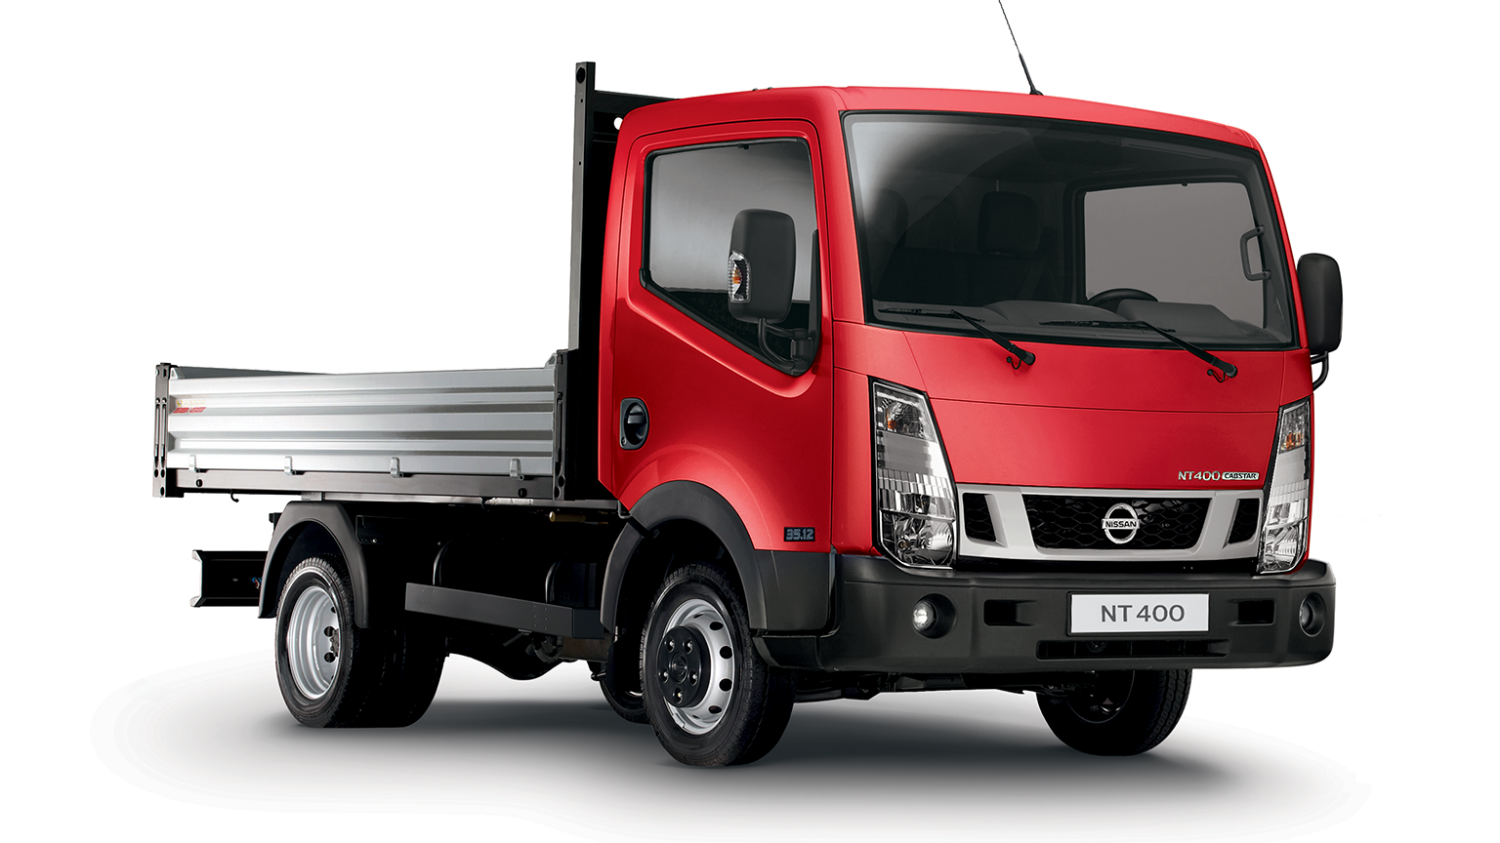 Nissan NT400 Cabstar - 3/4 front view